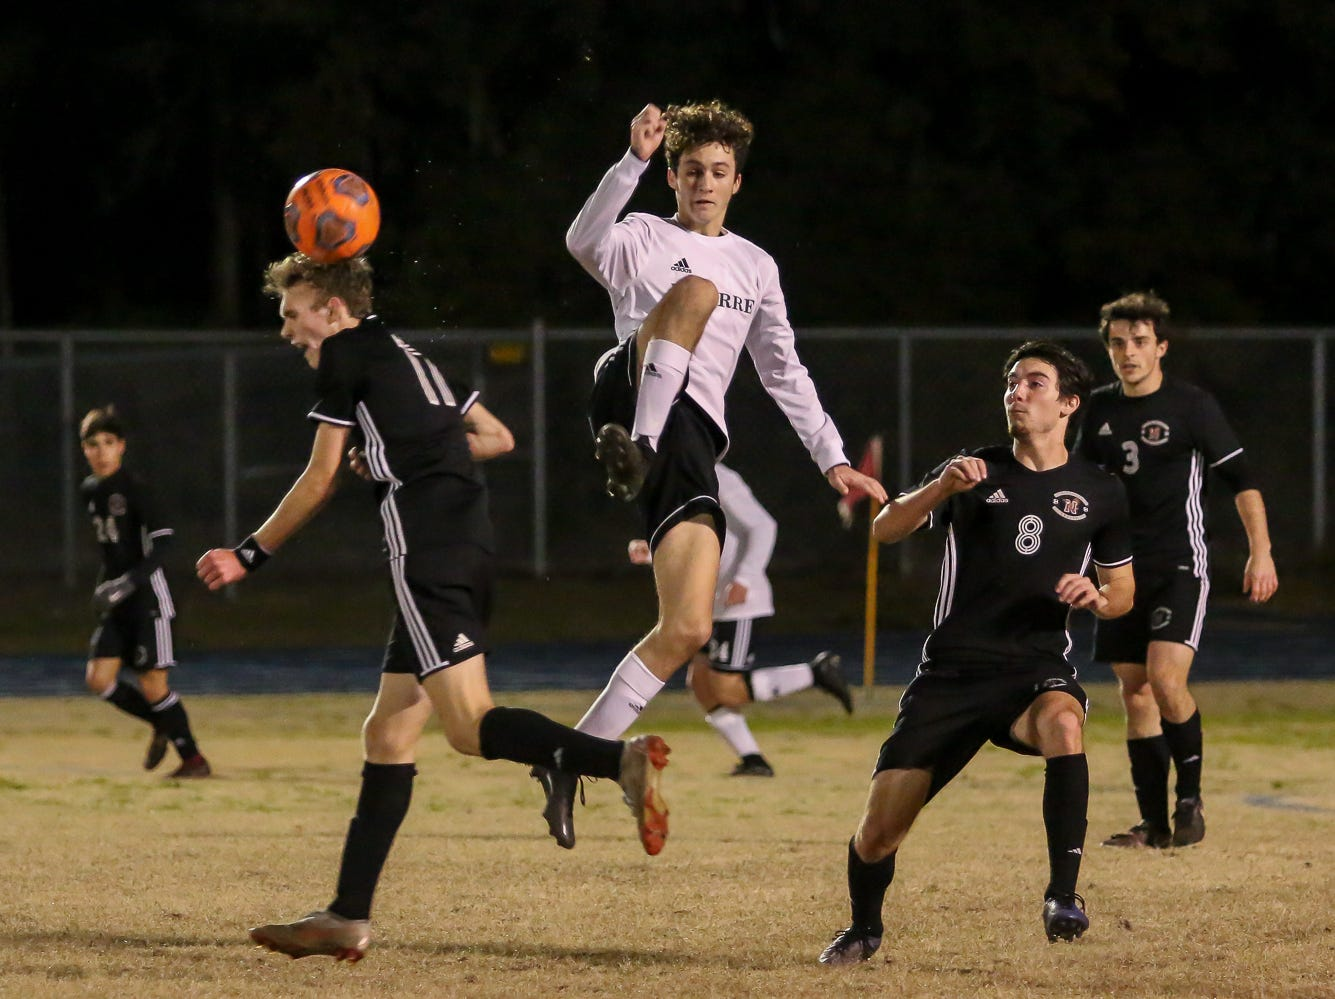 Niceville's Logan Harrelson, left, winces after getting clipped by the foot of Navarre's Jack Patching, jumping, in the District 1-4A championship game at Washington High School on Friday, February 1, 2019. For the second straight year, Niceville shut-out Navarre to win the championship. Last year, the score was 6-0 and this year it was 7-0.